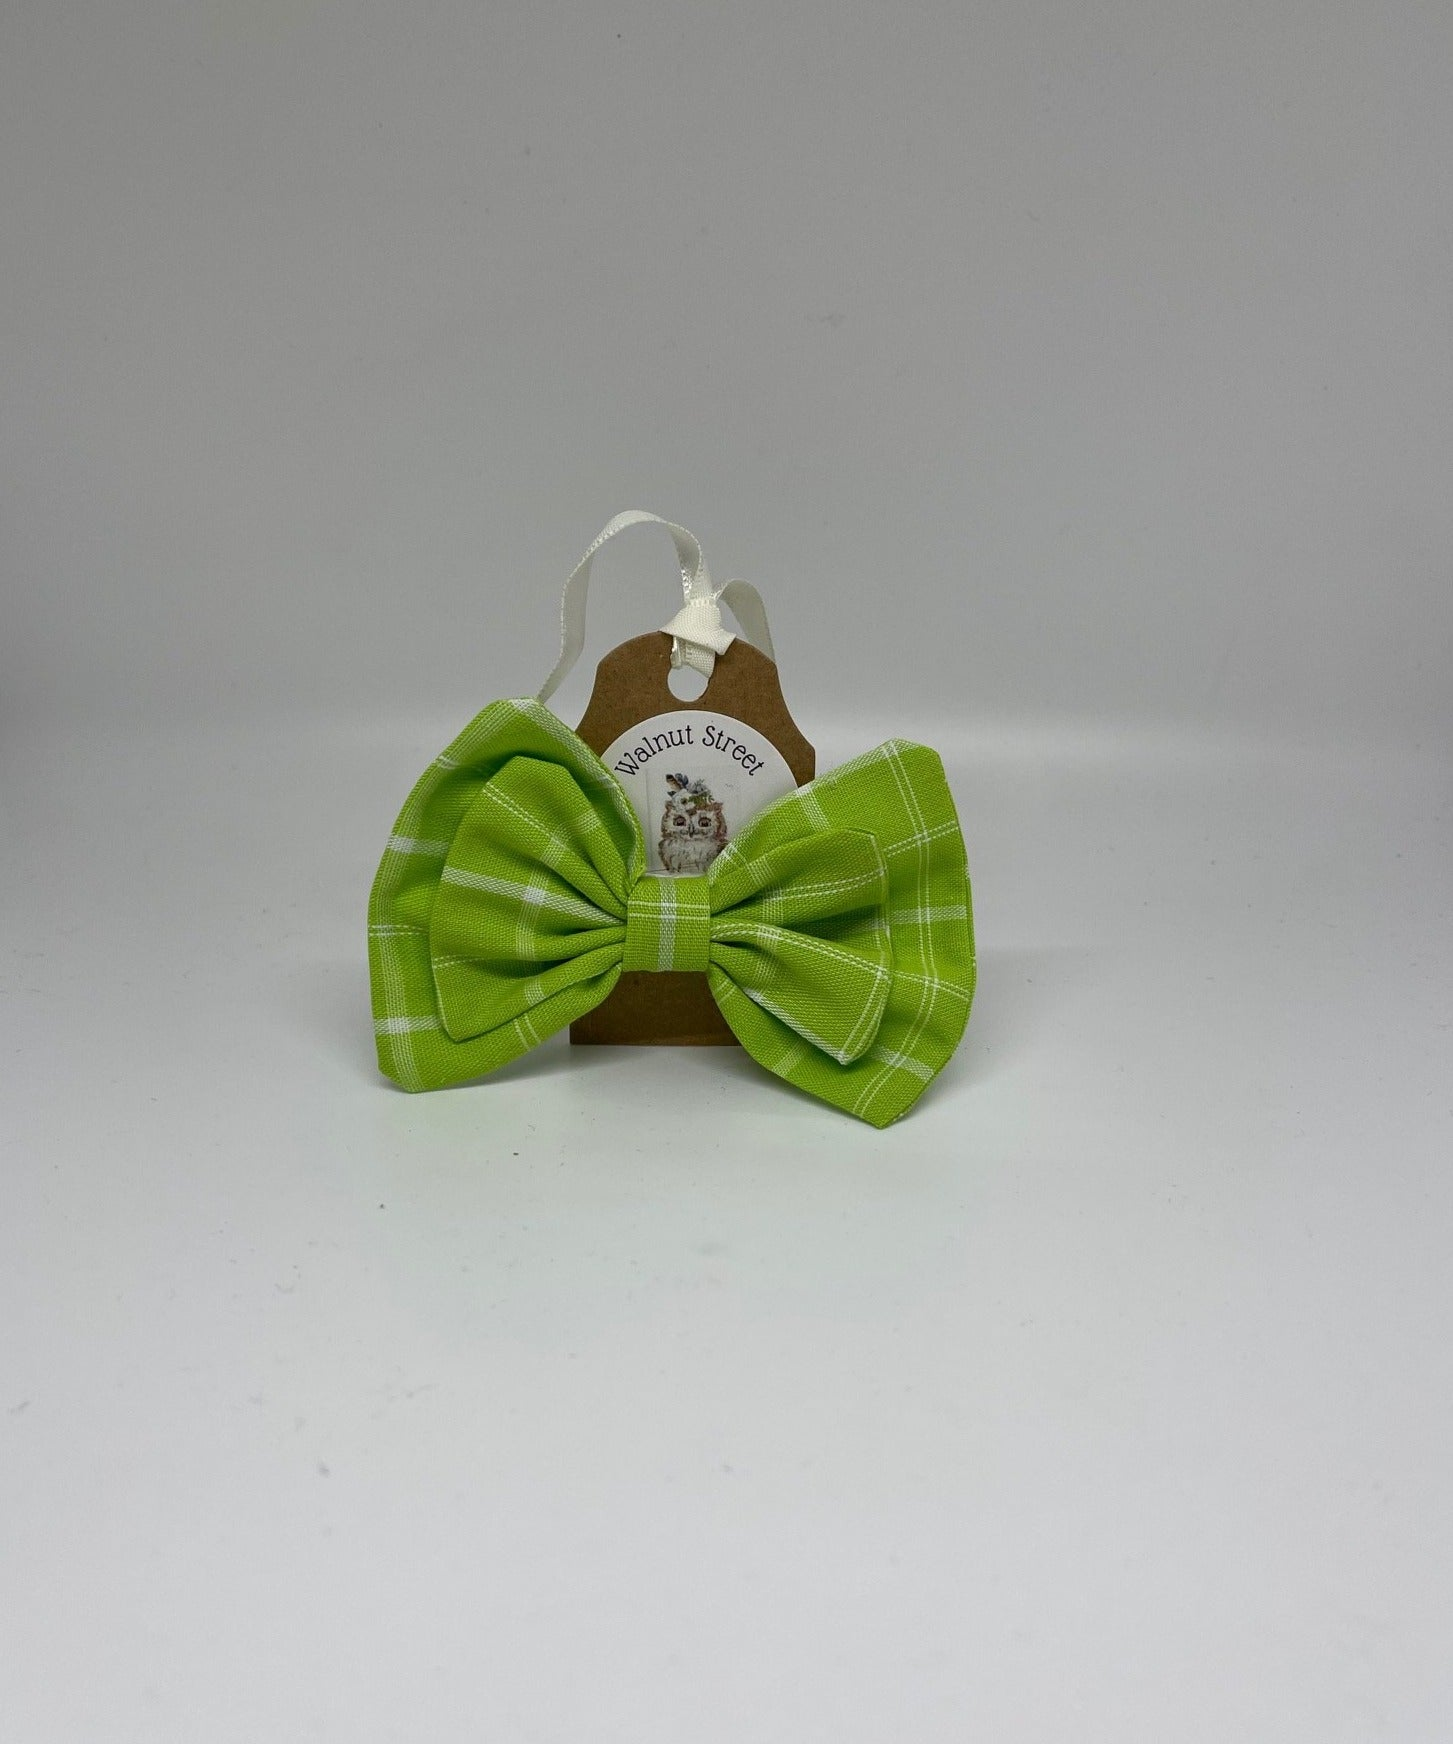 WALNUT STREET TREASURES -LIME GREEN